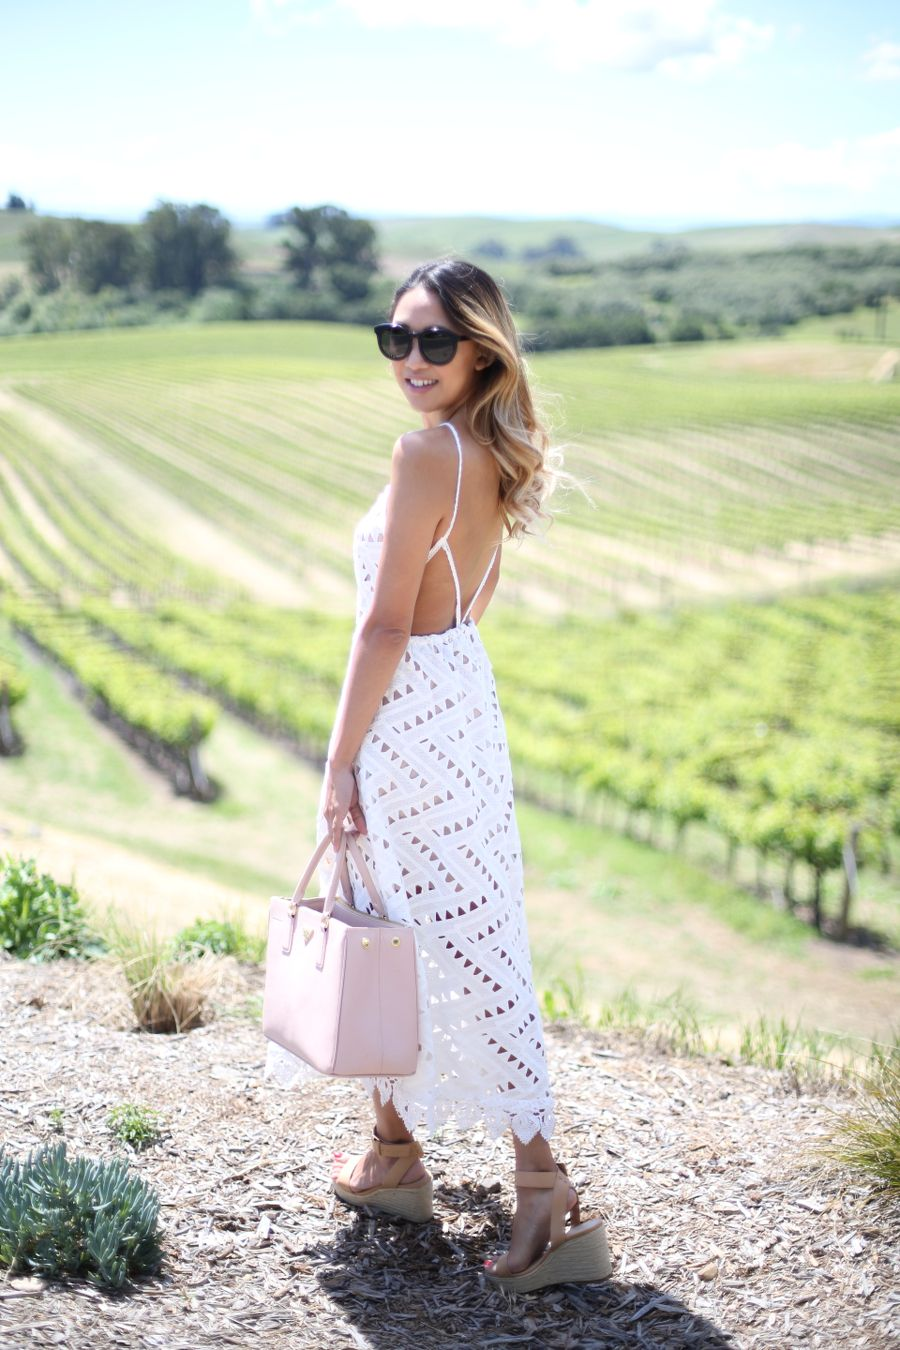 What happened to Napa Valley Clothing Line?